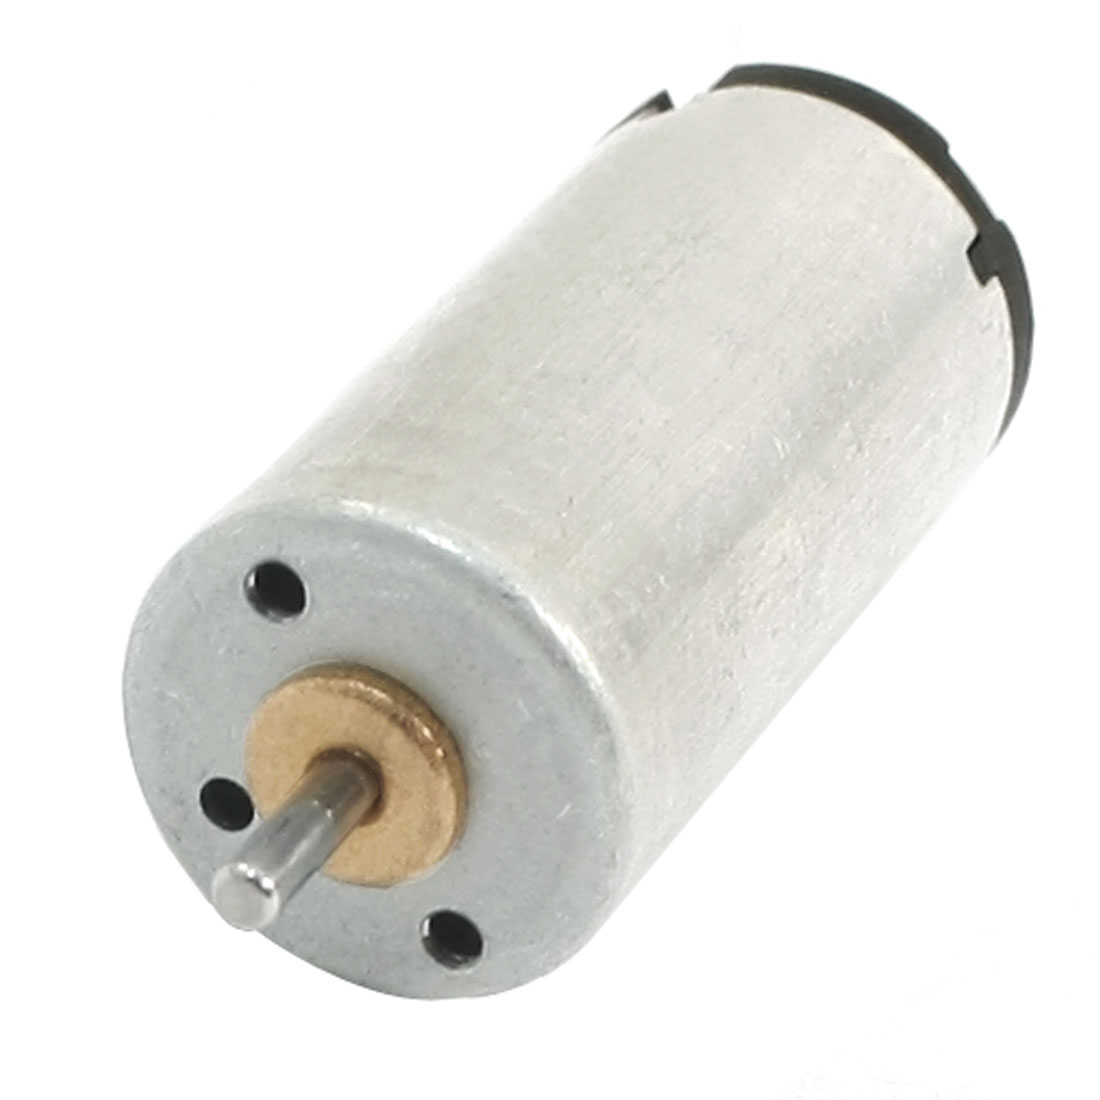 DC6V-1818RPM-Cylinder-Electric-Mini-Motor-for-Hair-Clipper-Robot